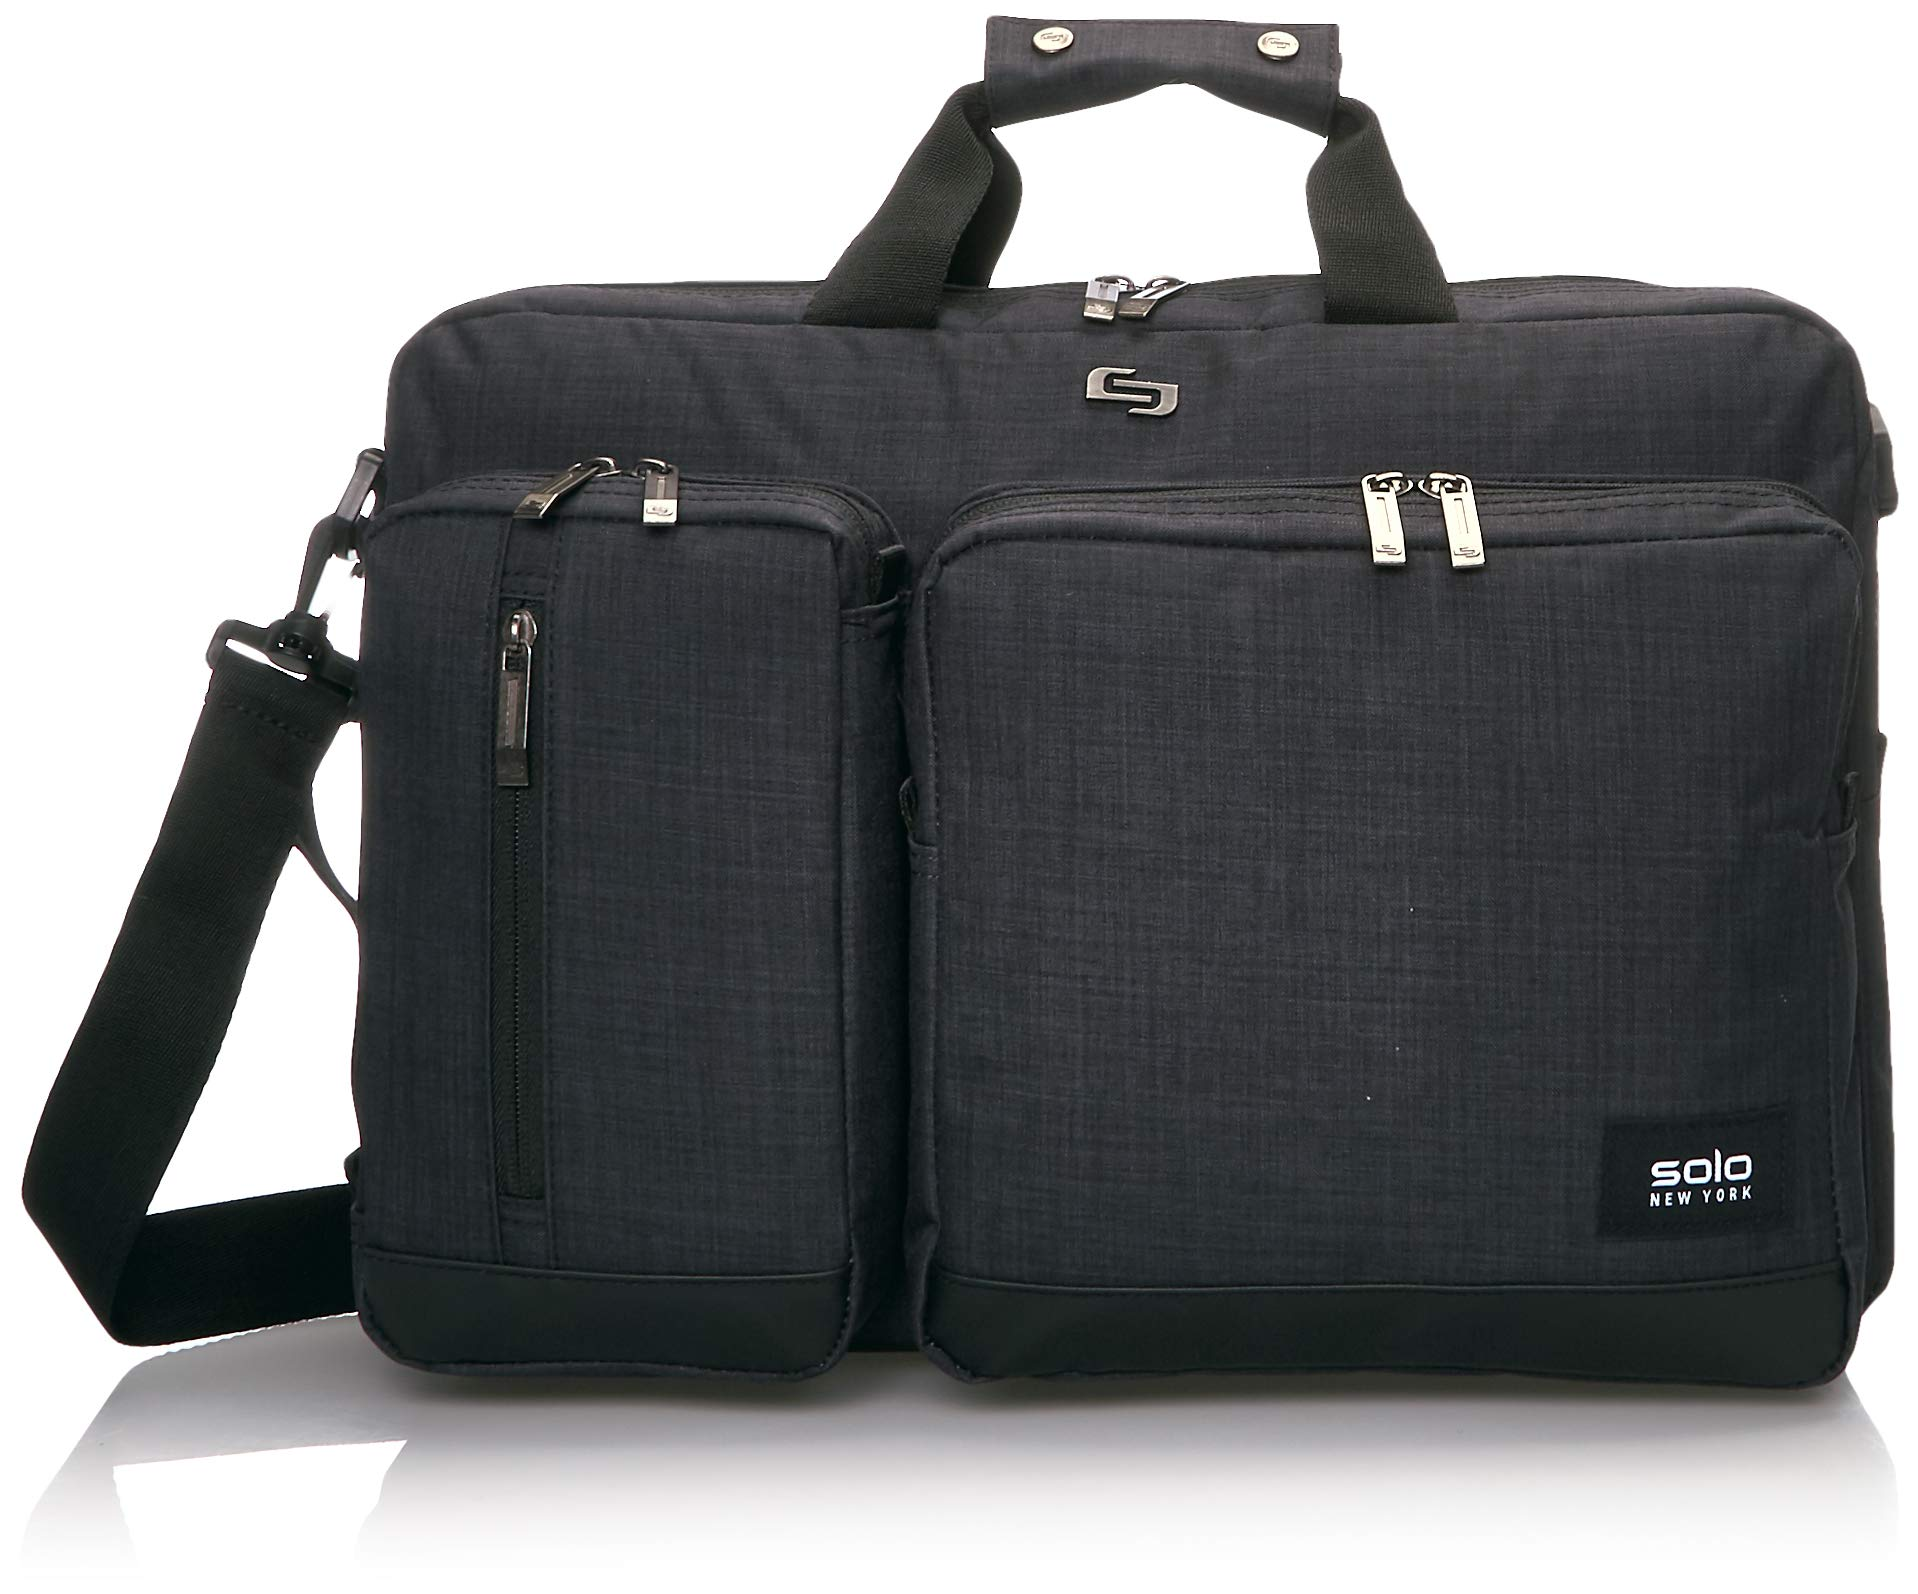 Solo Duane 15.6 Inch Laptop Hybrid Briefcase, Converts to Backpack, Slate, Amazon Exclusive by SOLO (Image #1)